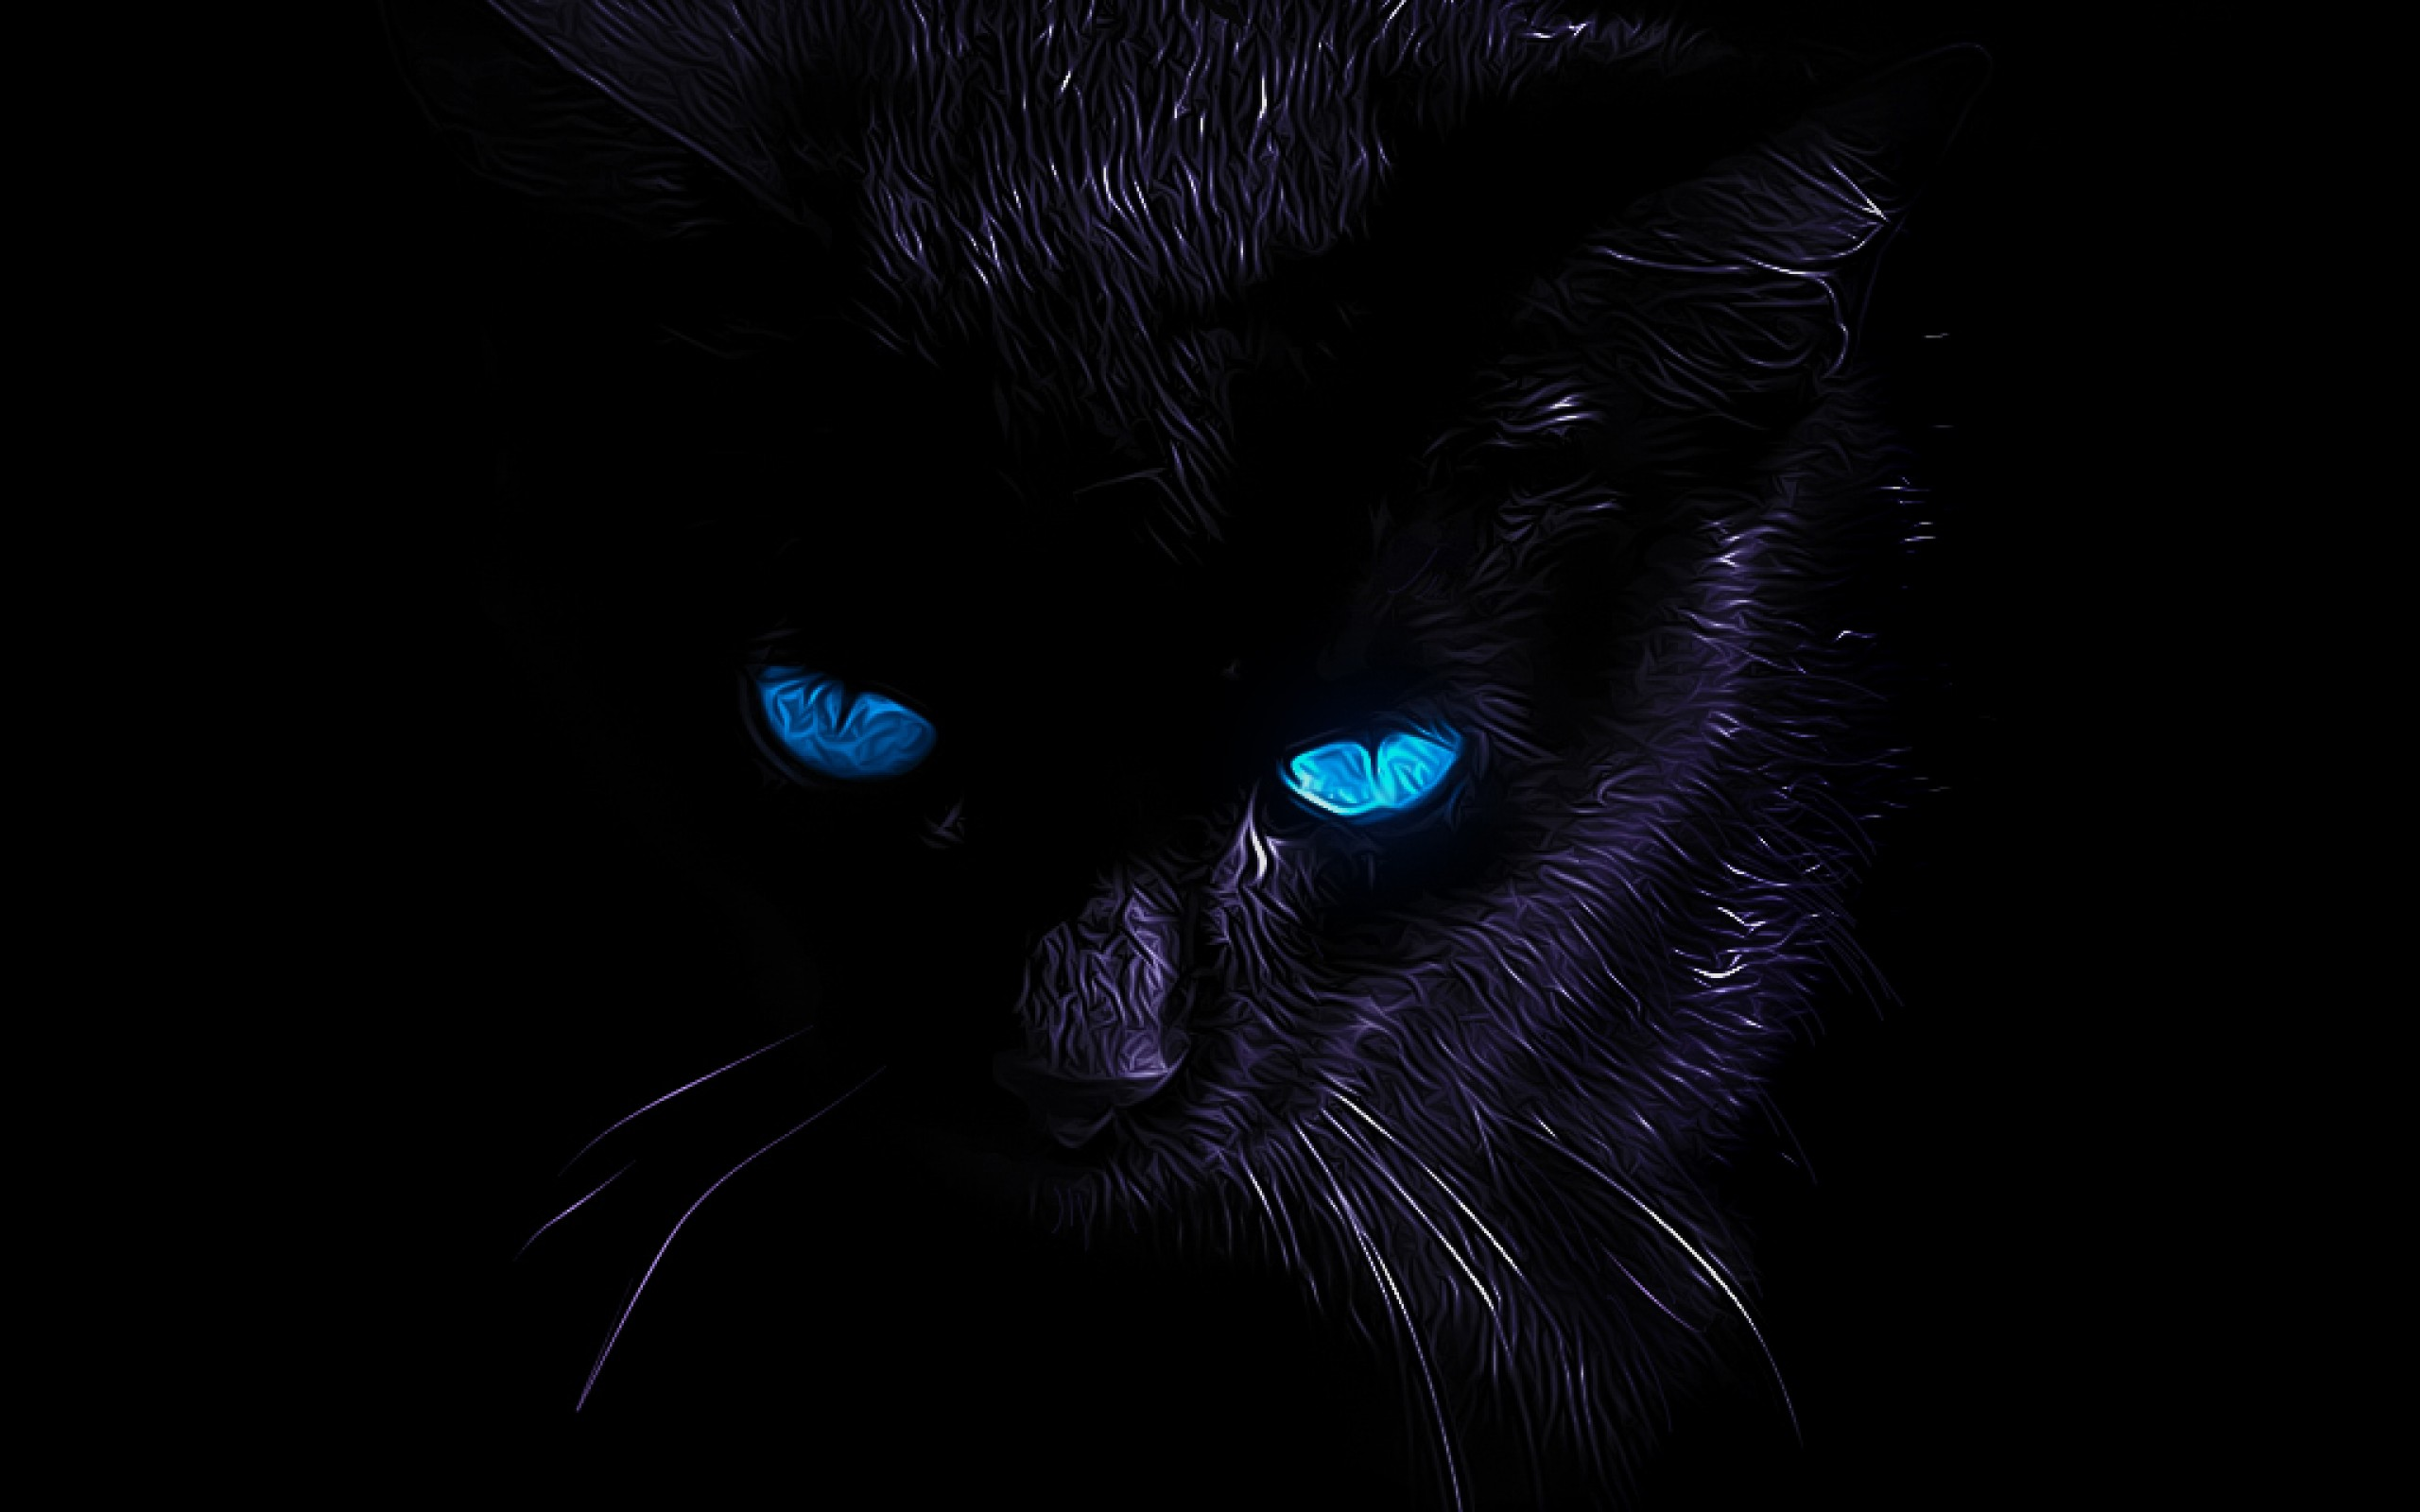 Black Cat Wallpaper 7